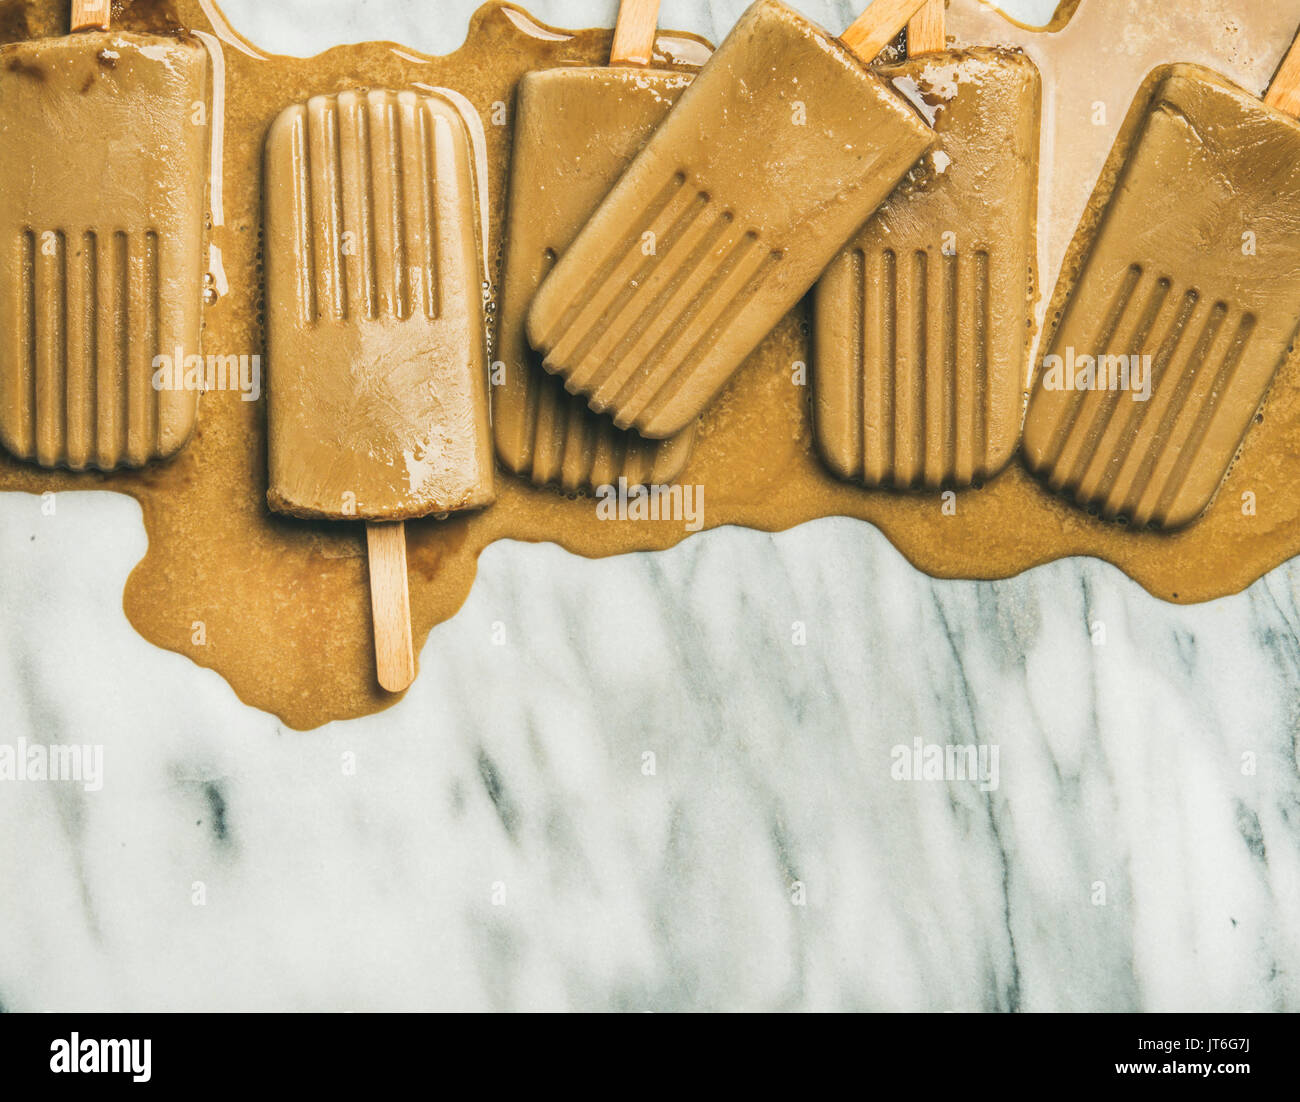 Summer healthy vegan frozen dessert. Flatlay of melting coffee latte popsicles over light grey marble background, - Stock Image